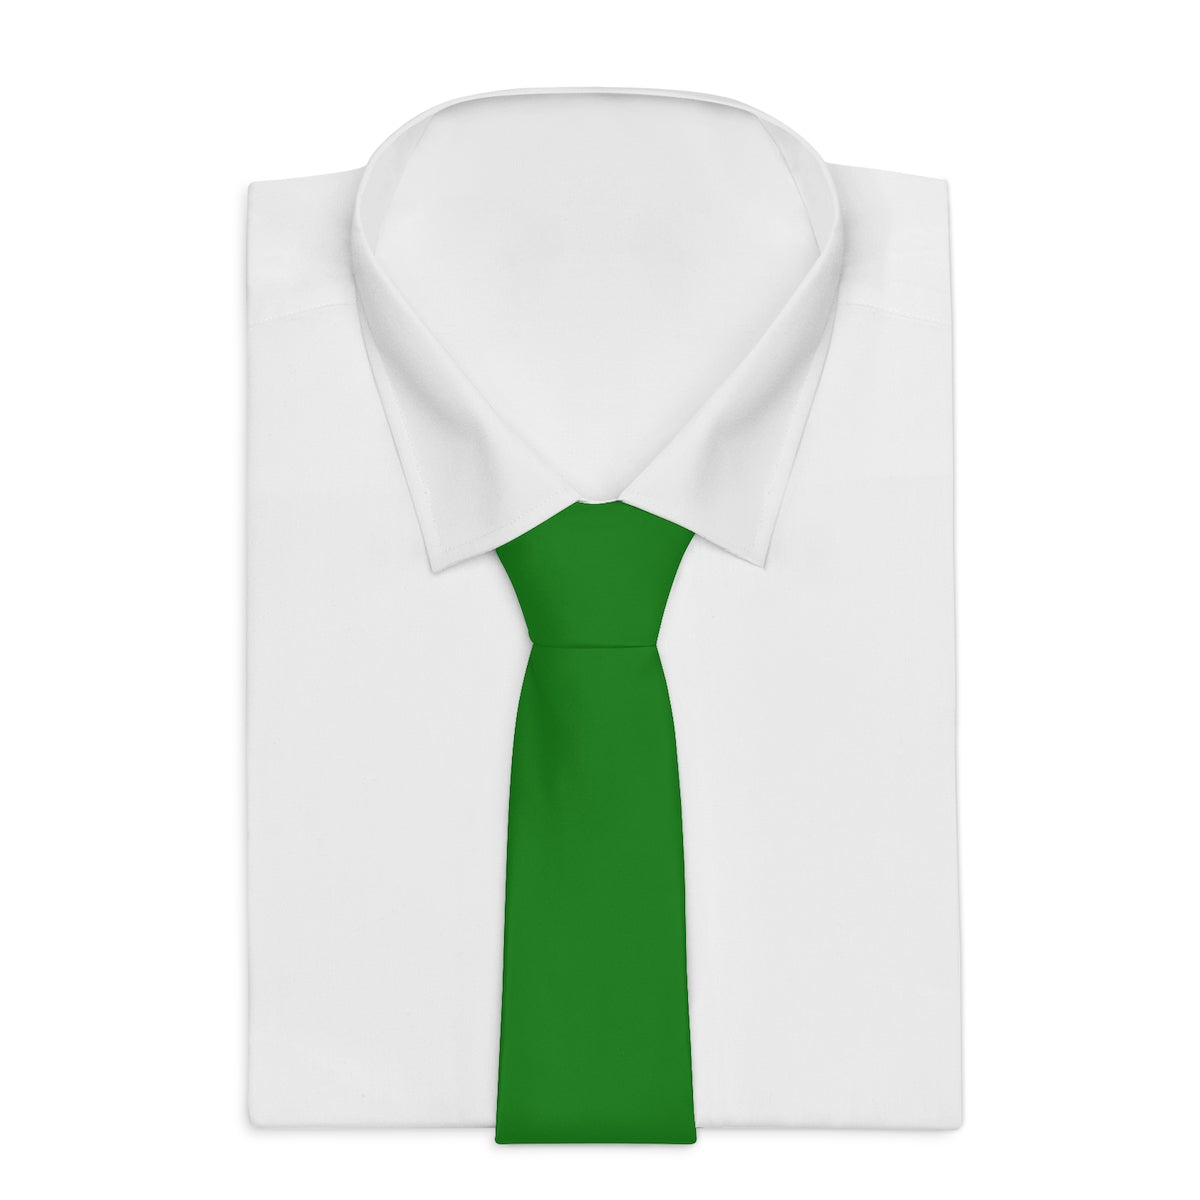 Emerald Green Solid Color Soft Satin Finish Printed Necktie Tie - Made in USA-Necktie-One Size-Heidi Kimura Art LLC